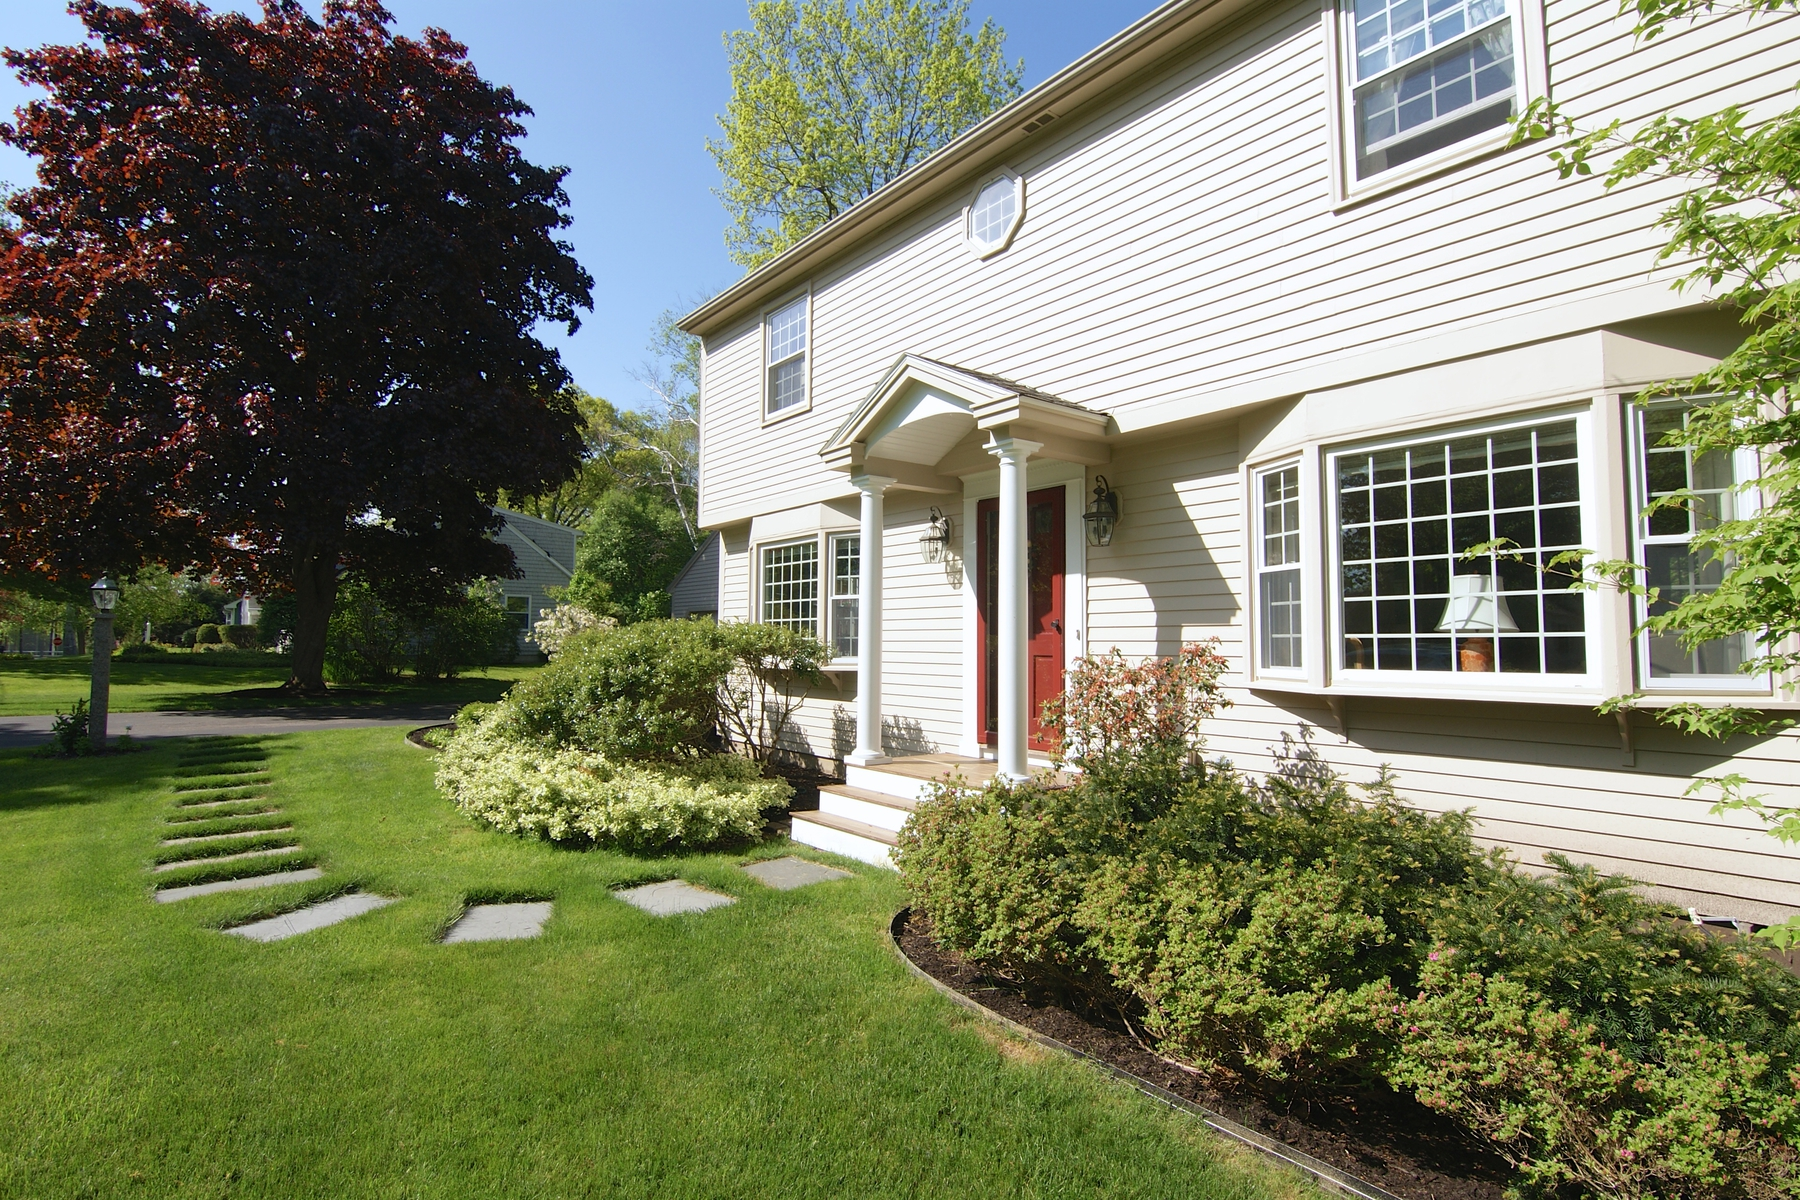 Single Family Home for Sale at Ideal Seacoast Location 71 Harborview Drive Rye, New Hampshire, 03870 United States